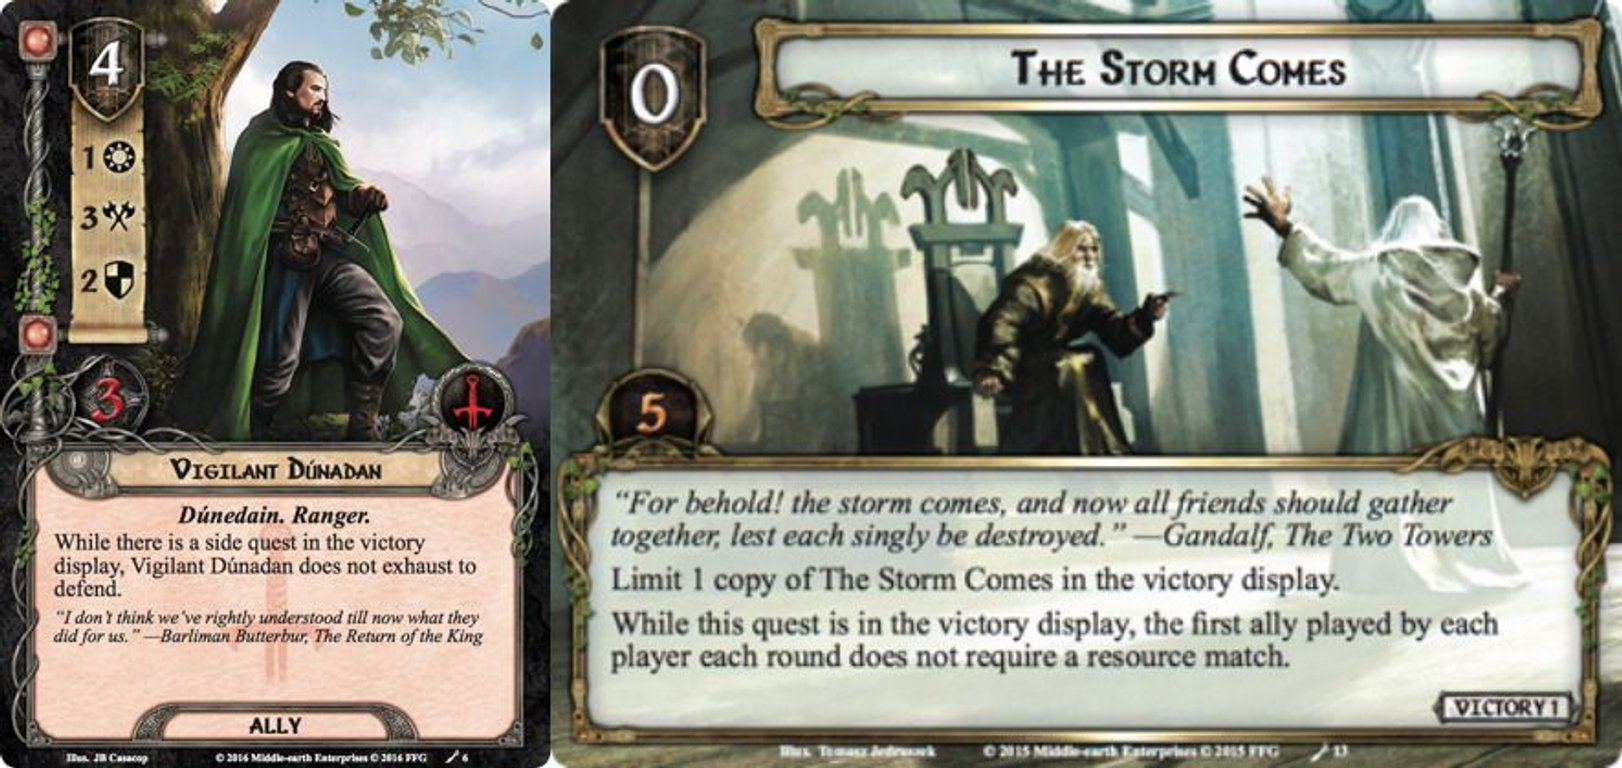 The Lord of the Rings: The Card Game - The Sands of Harad cards